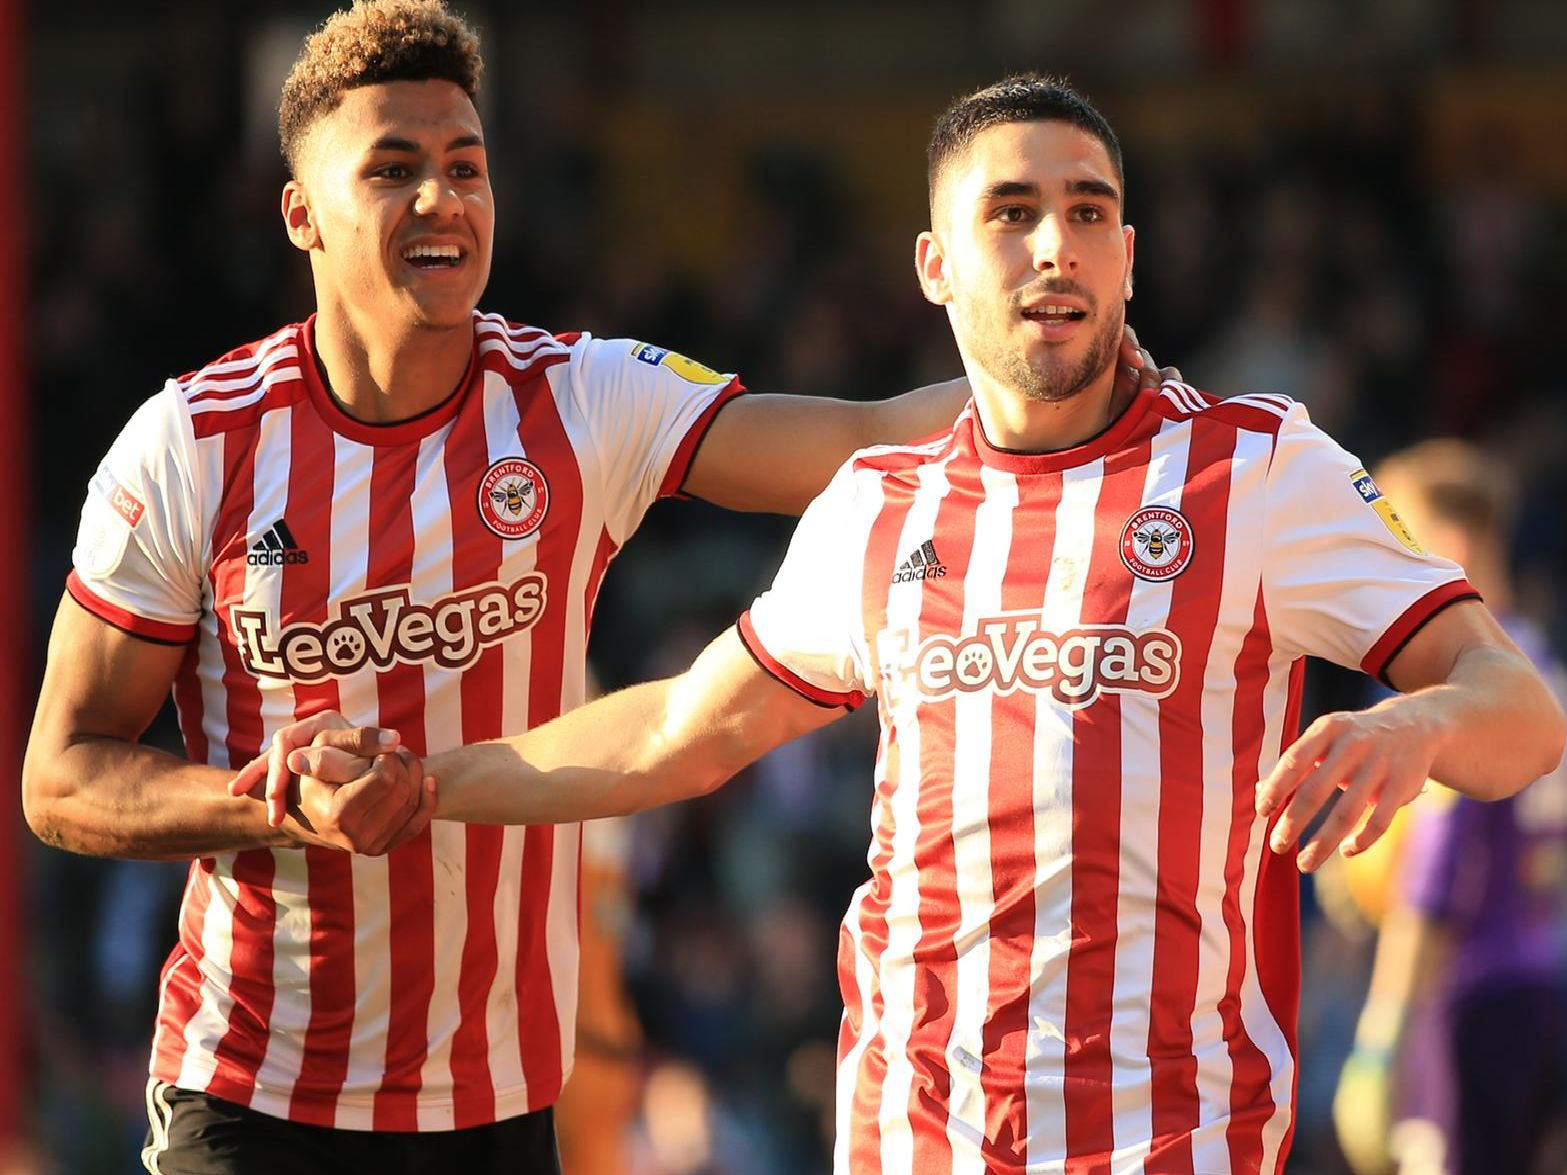 Brentford's Ollie Watkins and Neal Maupay celebrate a goal last season. Picture by Getty Images